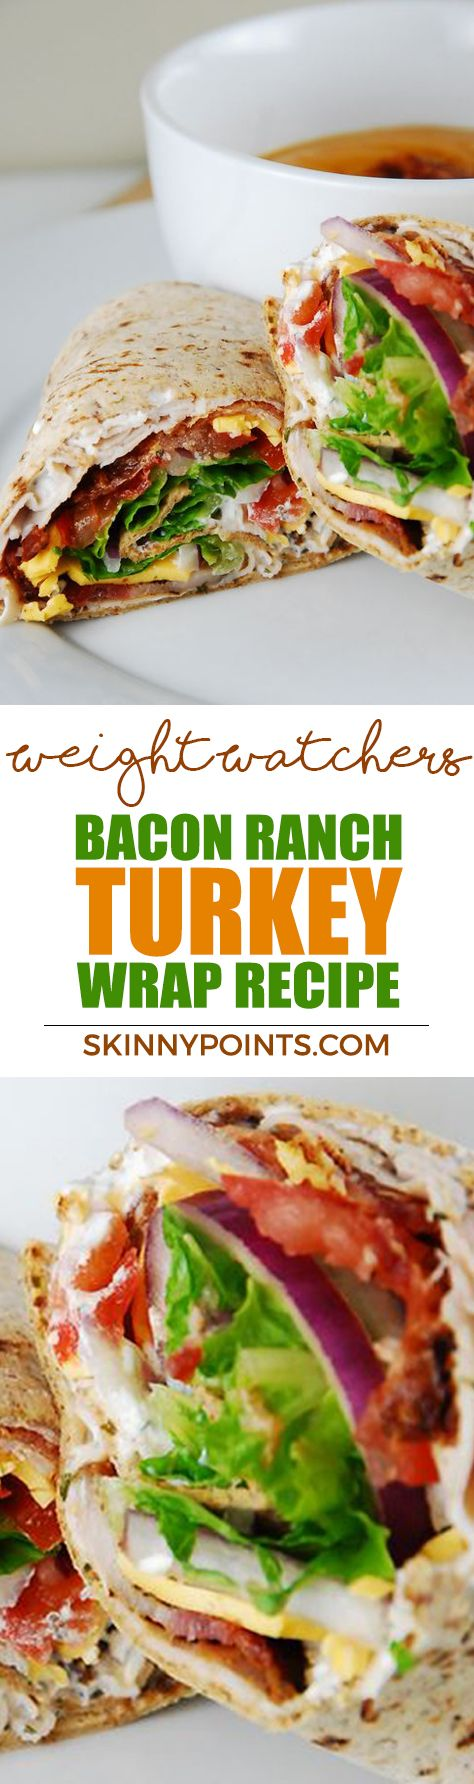 Bacon Ranch Turkey Wrap Recipe - Come with 7 weight watchers smart points